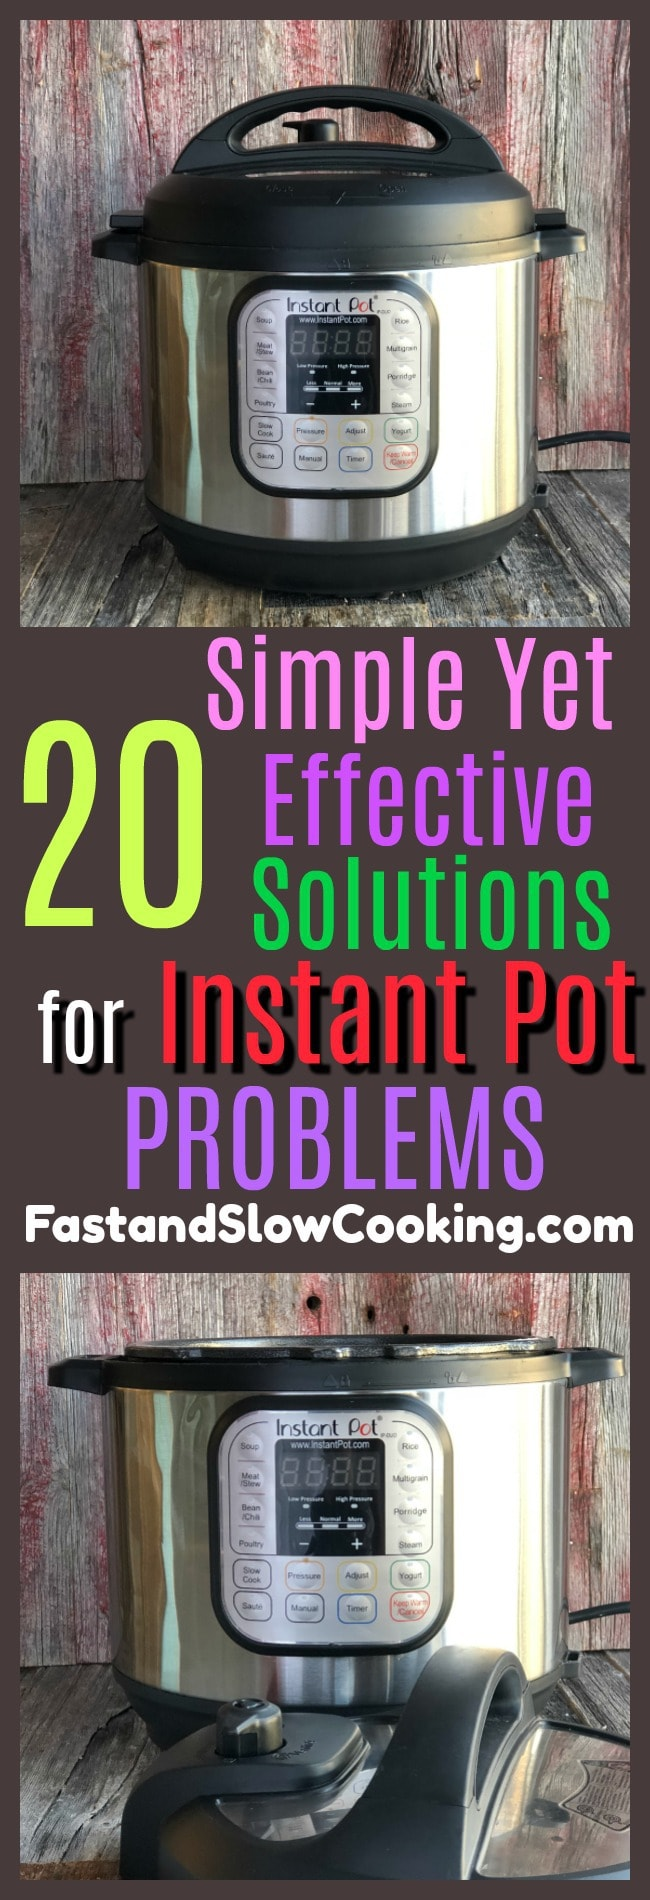 20 simple yet effective solutions for instant pot problems